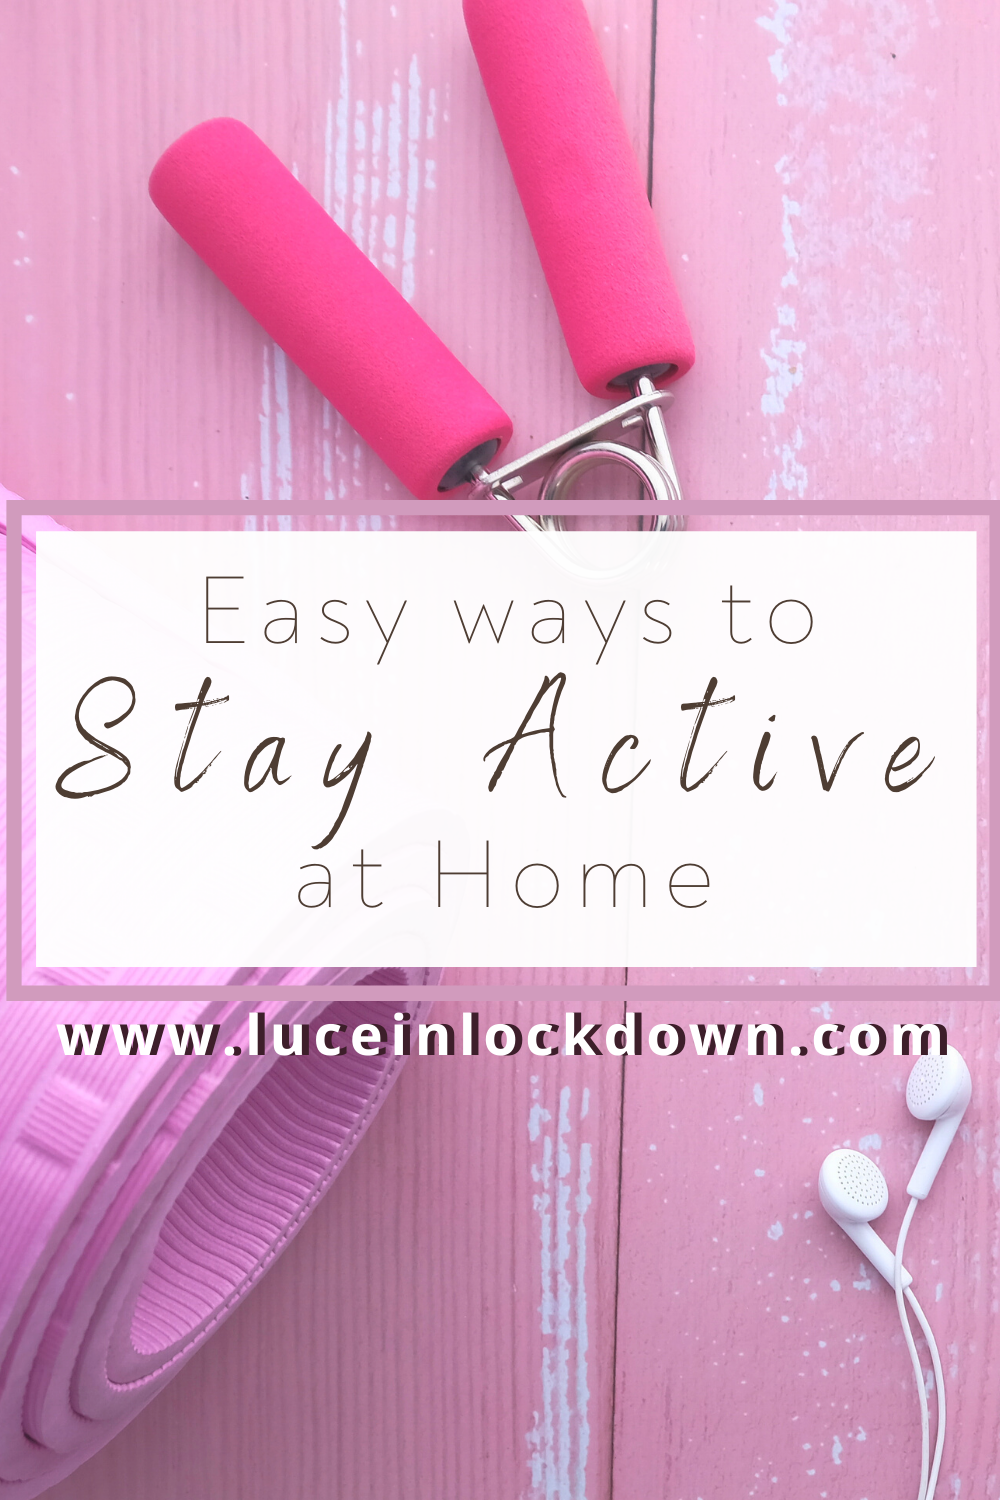 Staying active at home - pin